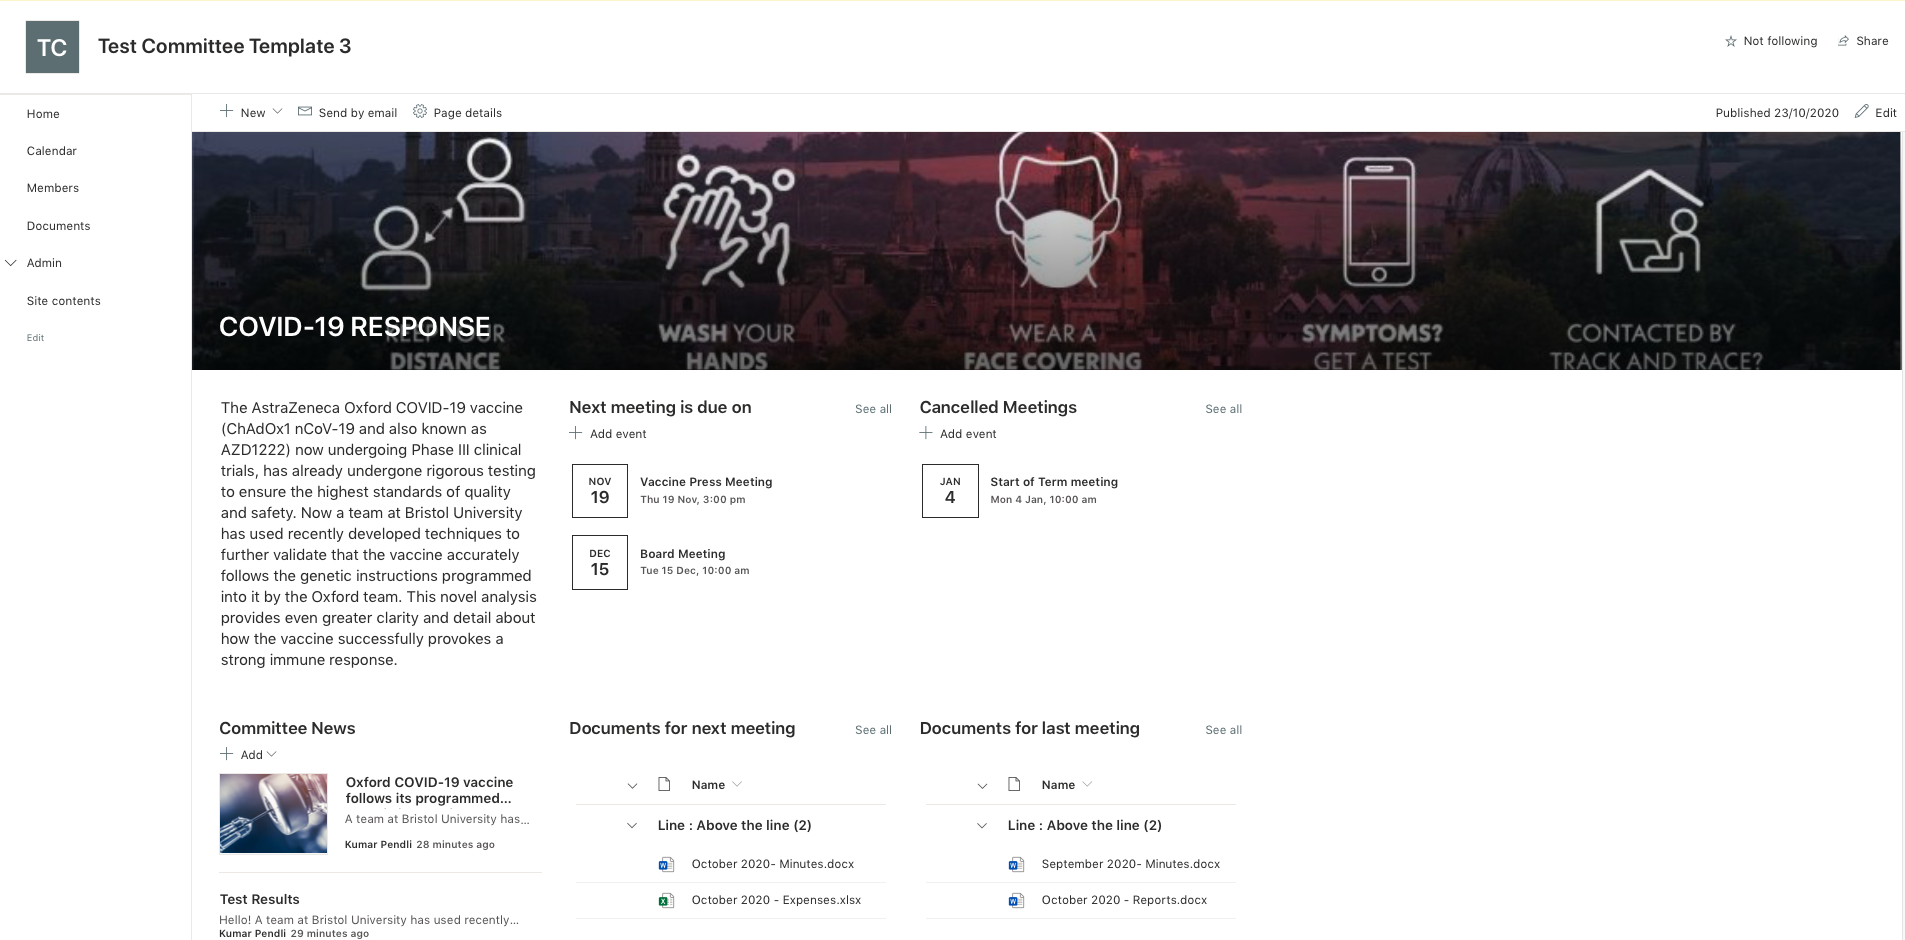 Screenshot of the Committee template in SharePoint Online, showing dates and documentation for committee meetings